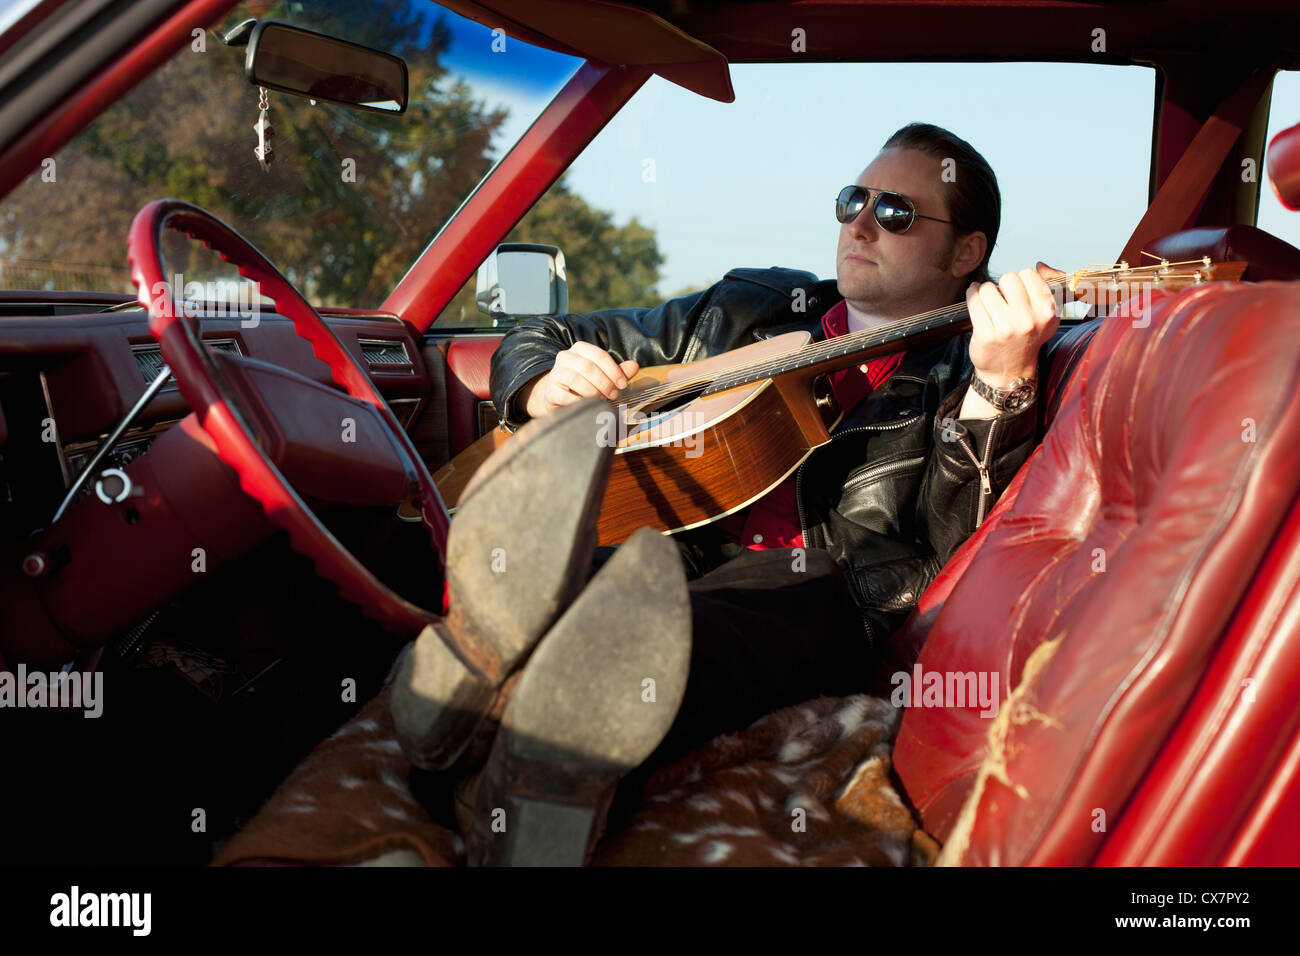 A rockabilly guy playing an acoustic guitar while sitting in his vintage car - Stock Photo